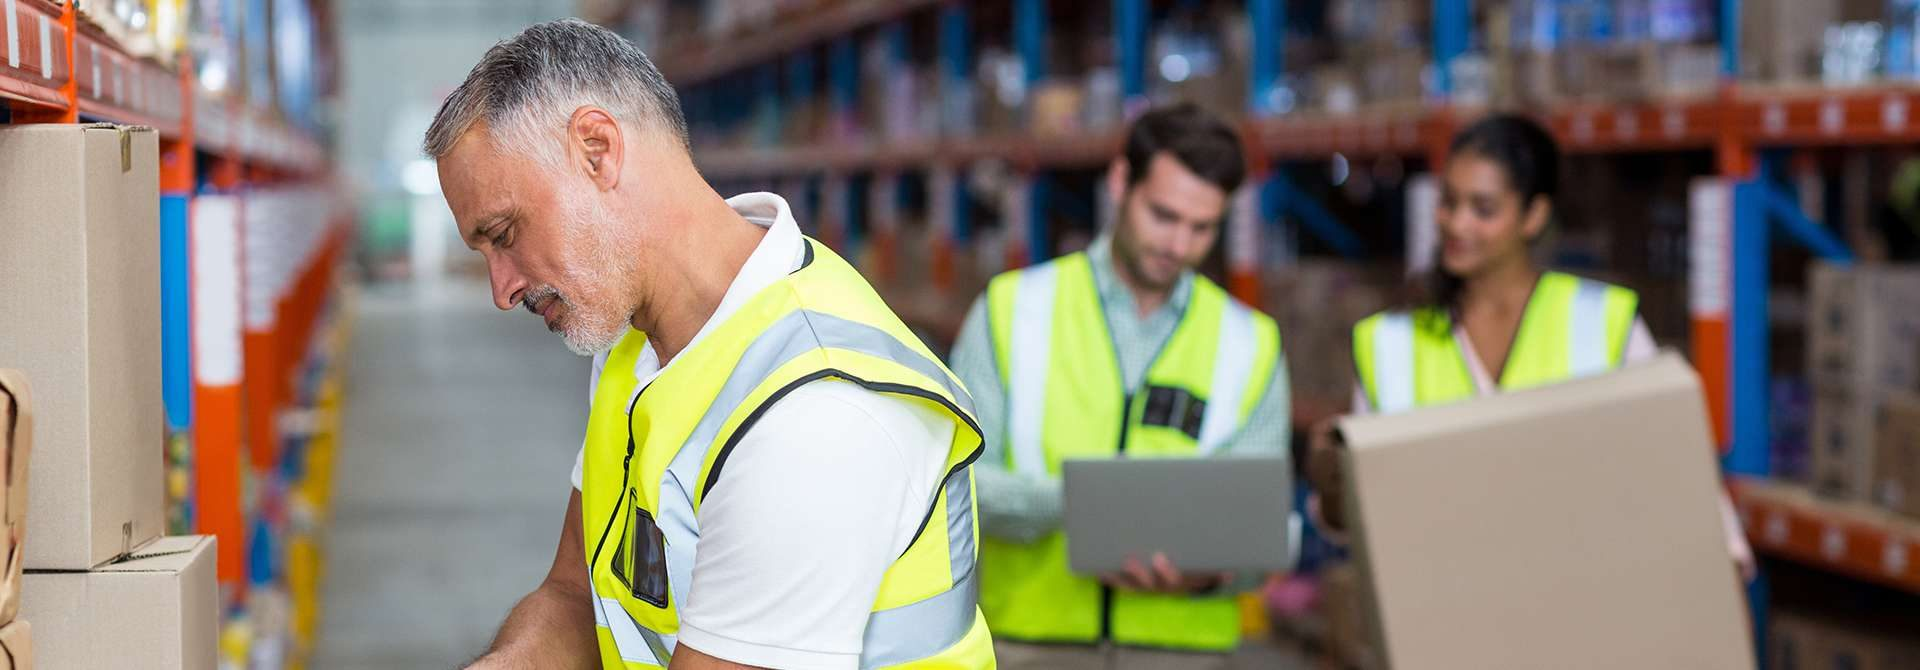 4 Reasons to Hire Temporary Warehouse Employees